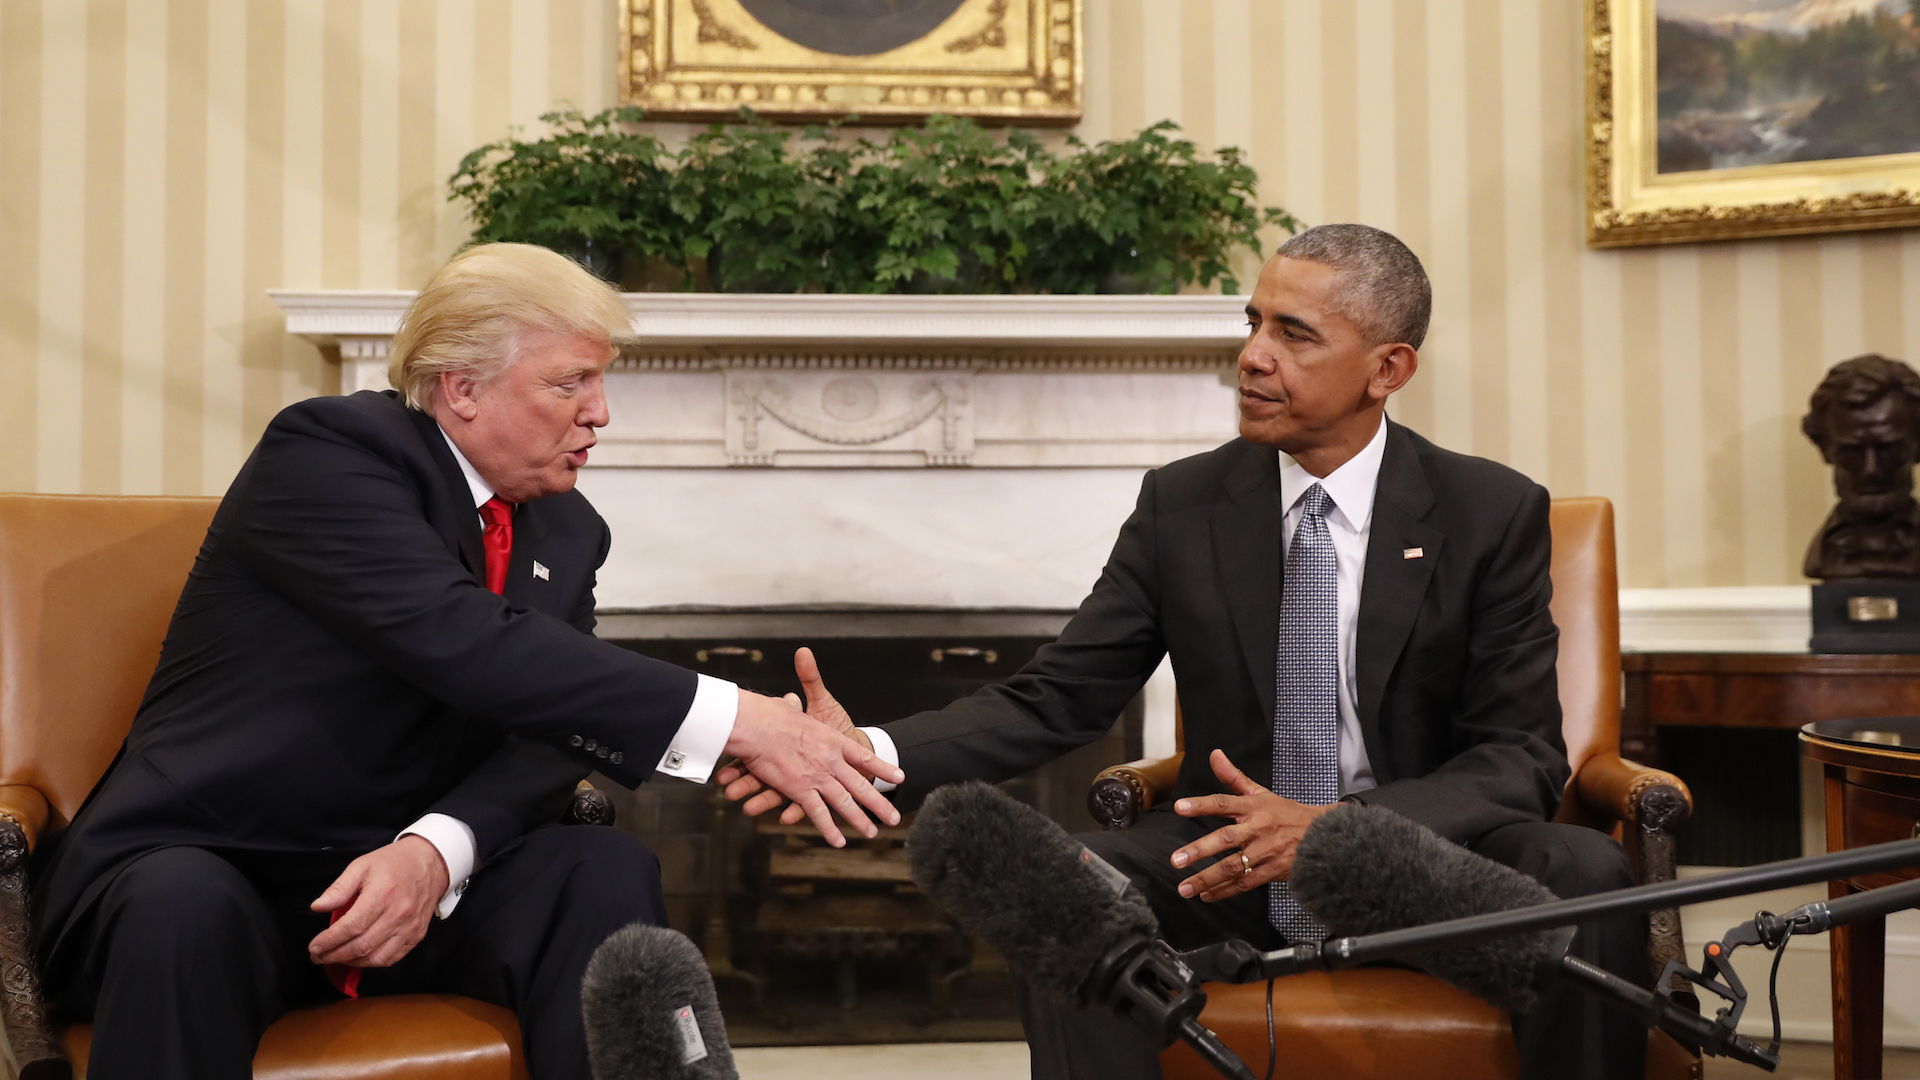 Trump meets with Obama at the White House as whirlwind transition starts